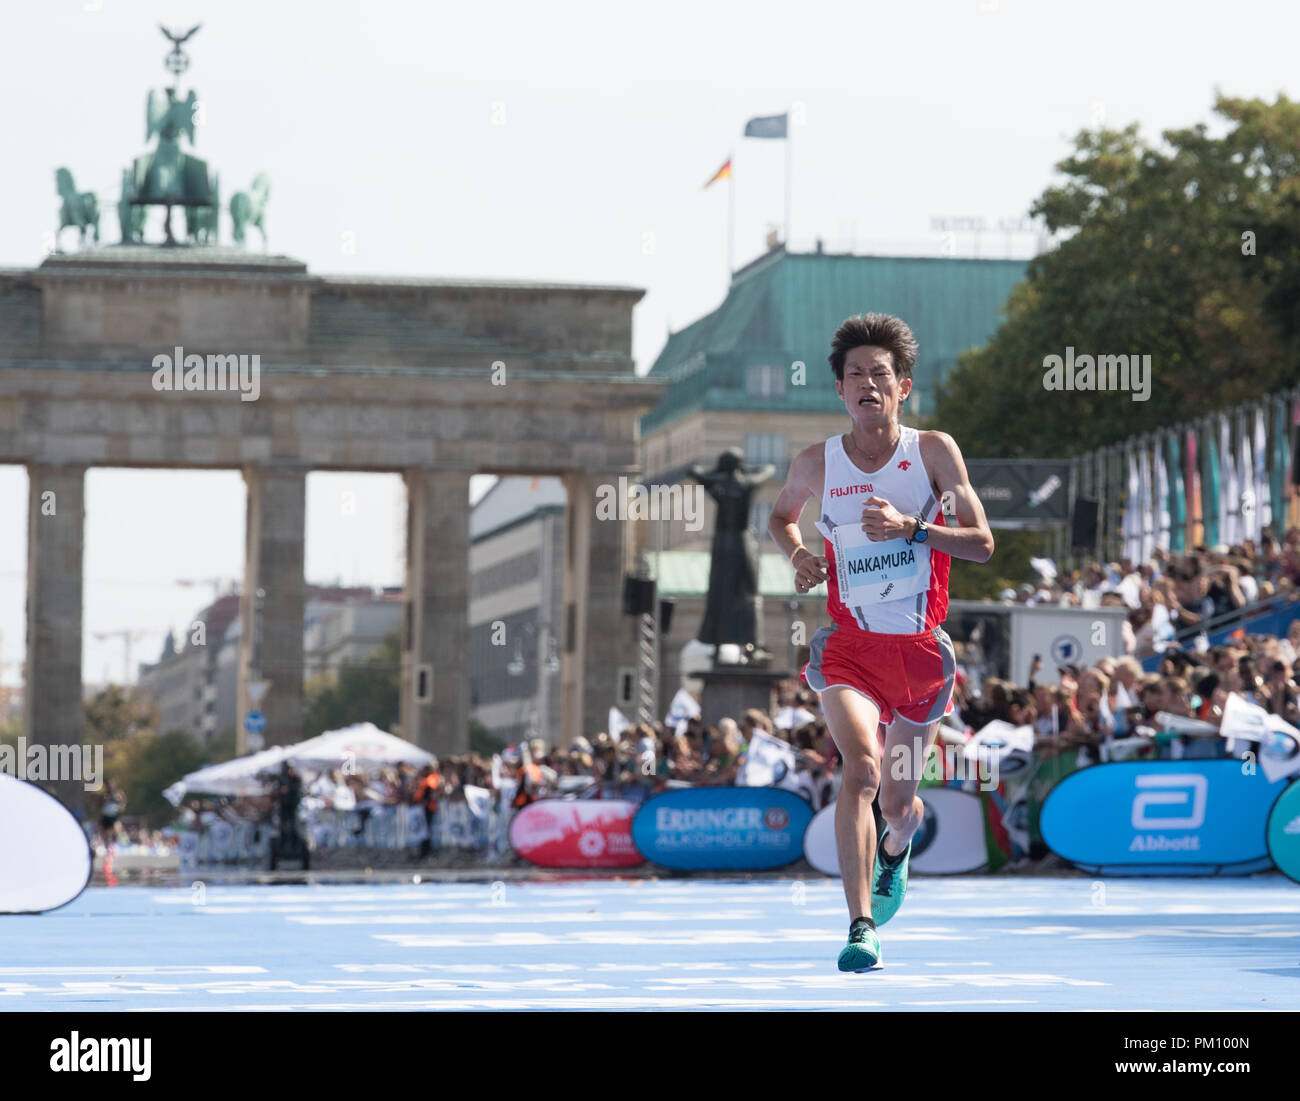 Berlin, Germany. 16 September 2018, Berlin: Shogo Nakamura from Japan finishing the 45th BMW Berlin Marathon in fourth place in 2:08.16. Photo: Soeren Stache/dpa Credit: dpa picture alliance/Alamy Live News - Stock Image